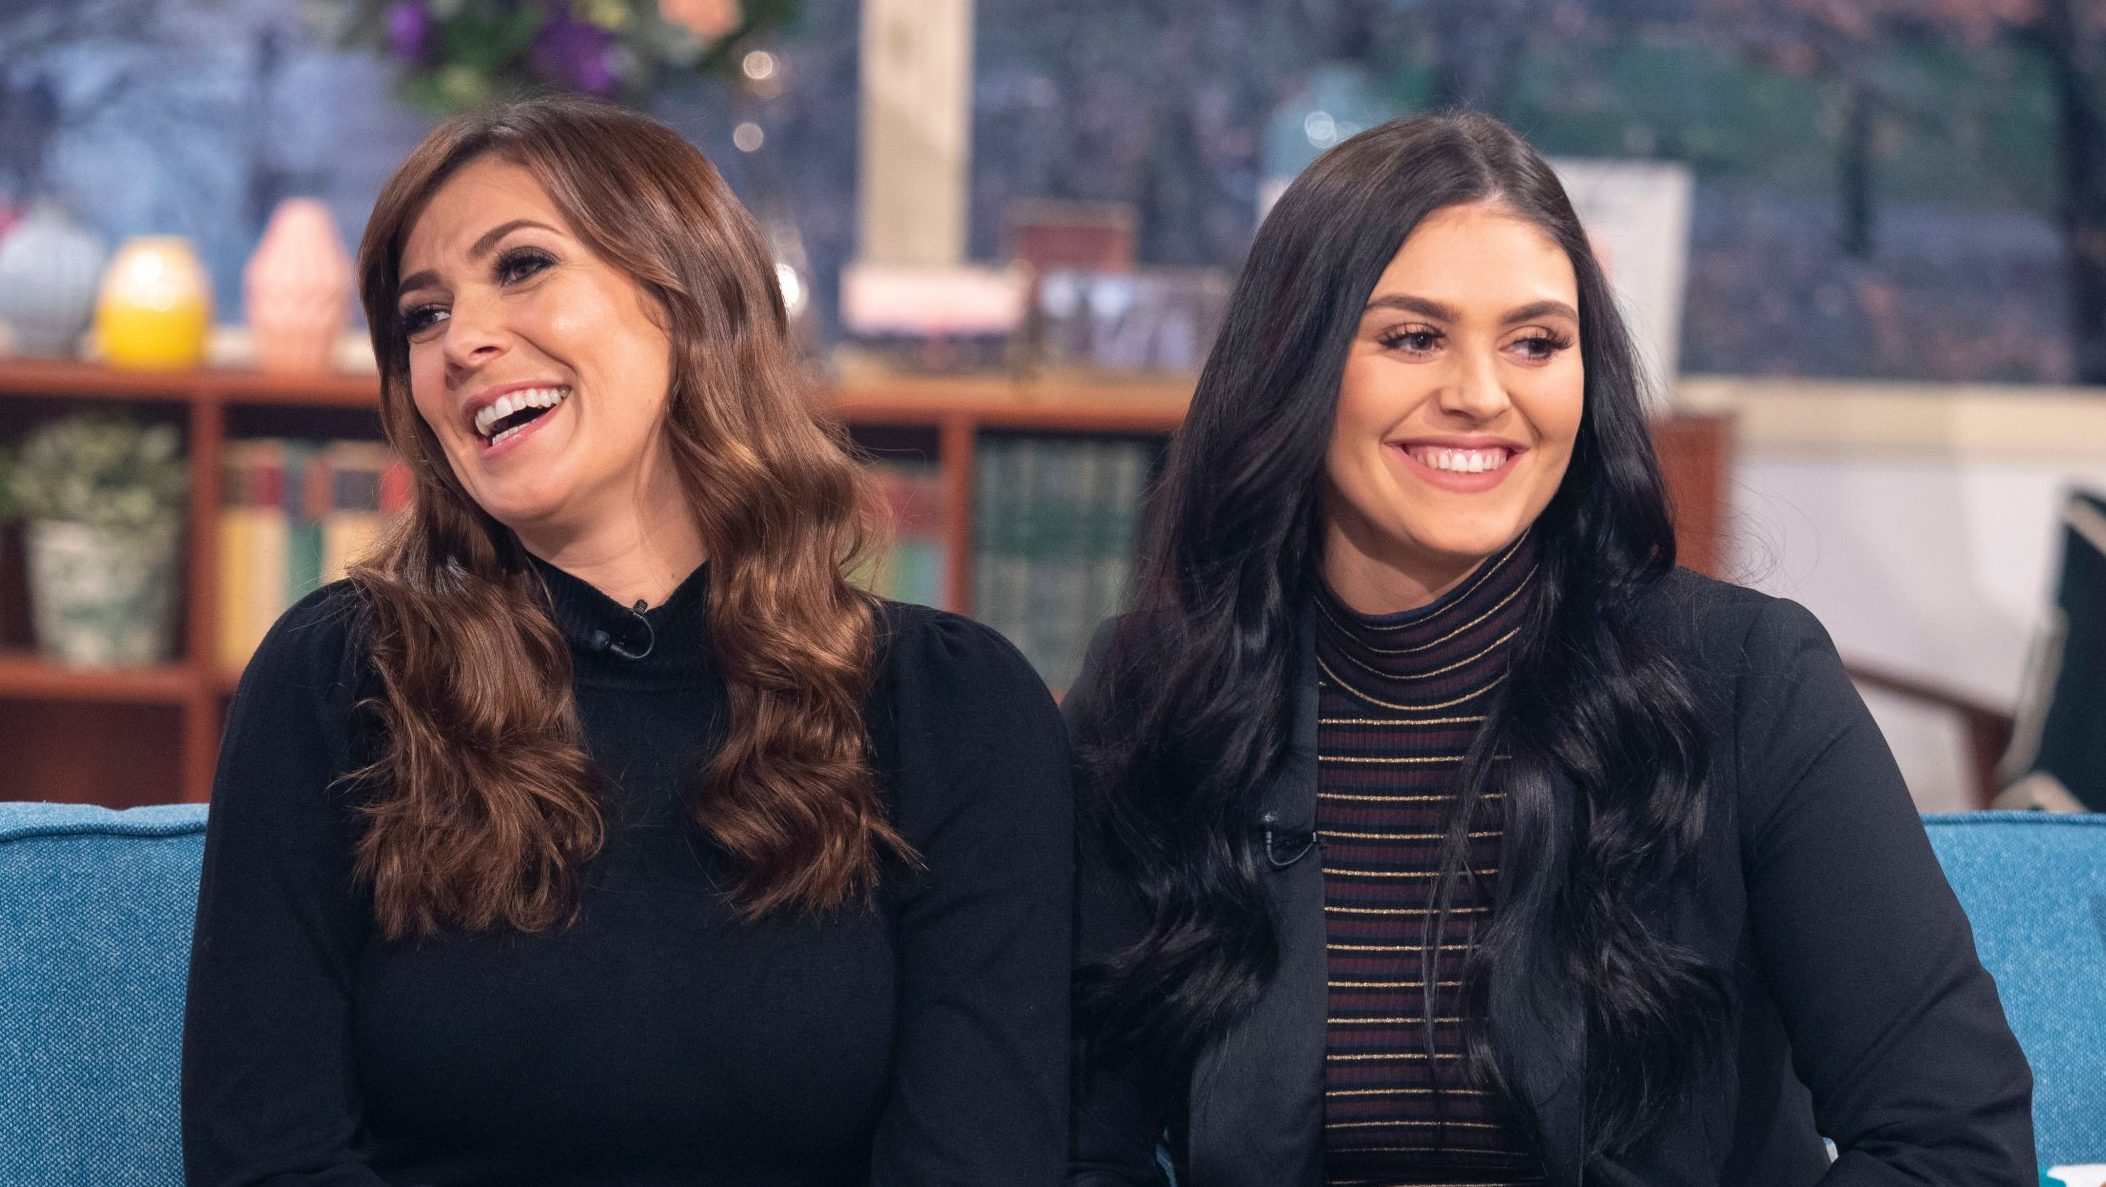 Coronation Street star Kym Marsh reveals unusual name she'll have instead of 'grandma' when daughter gives birth